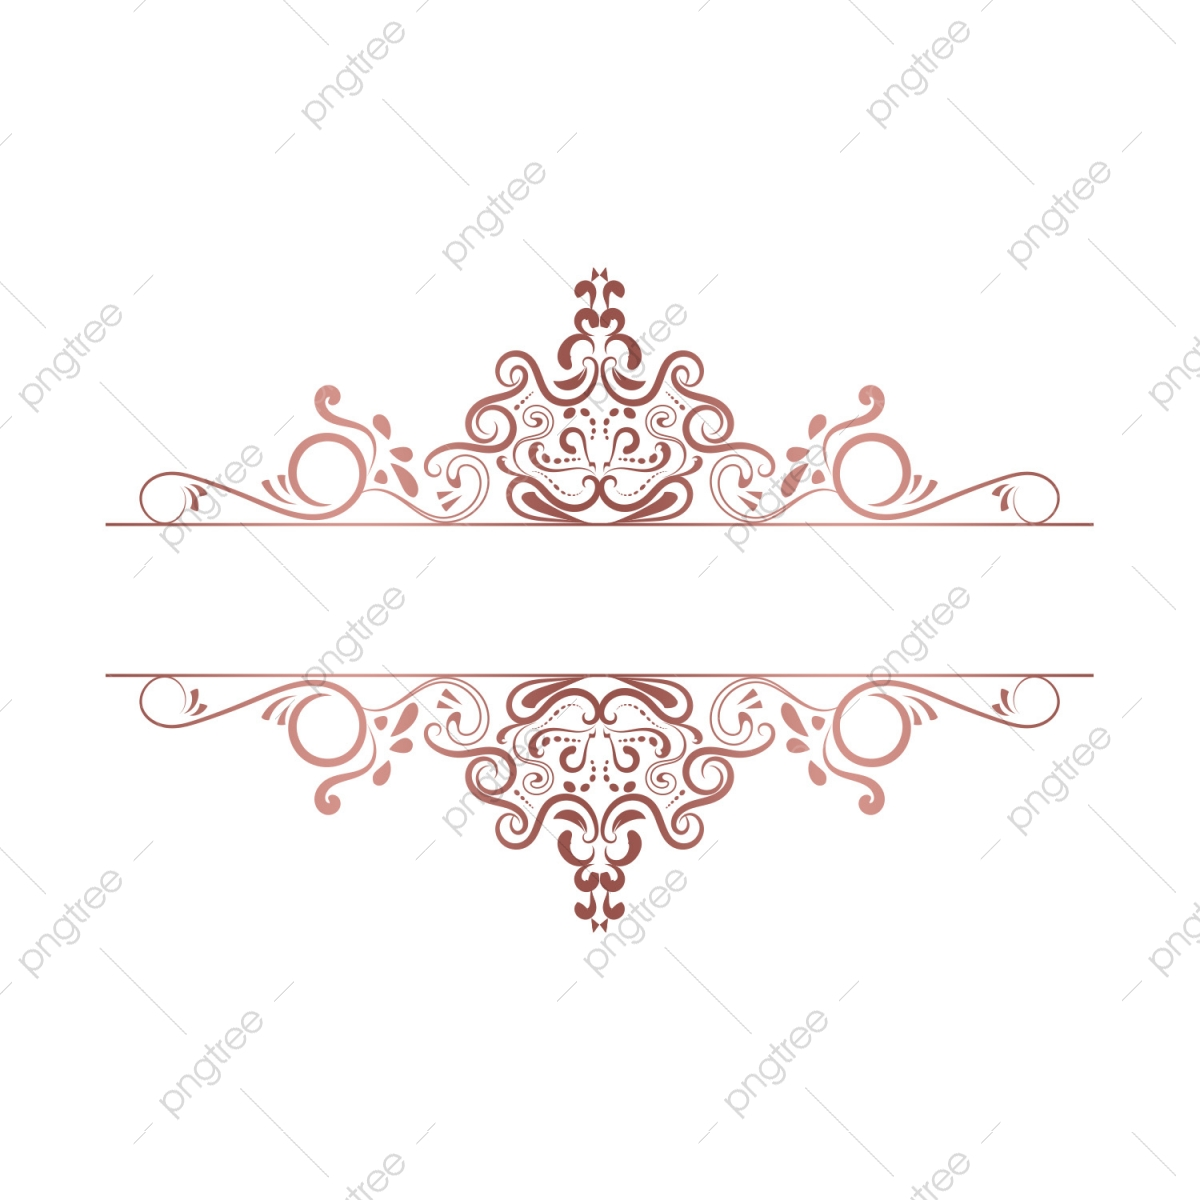 Vintage Border Png Images Vector And Psd Files Free Download On Pngtree